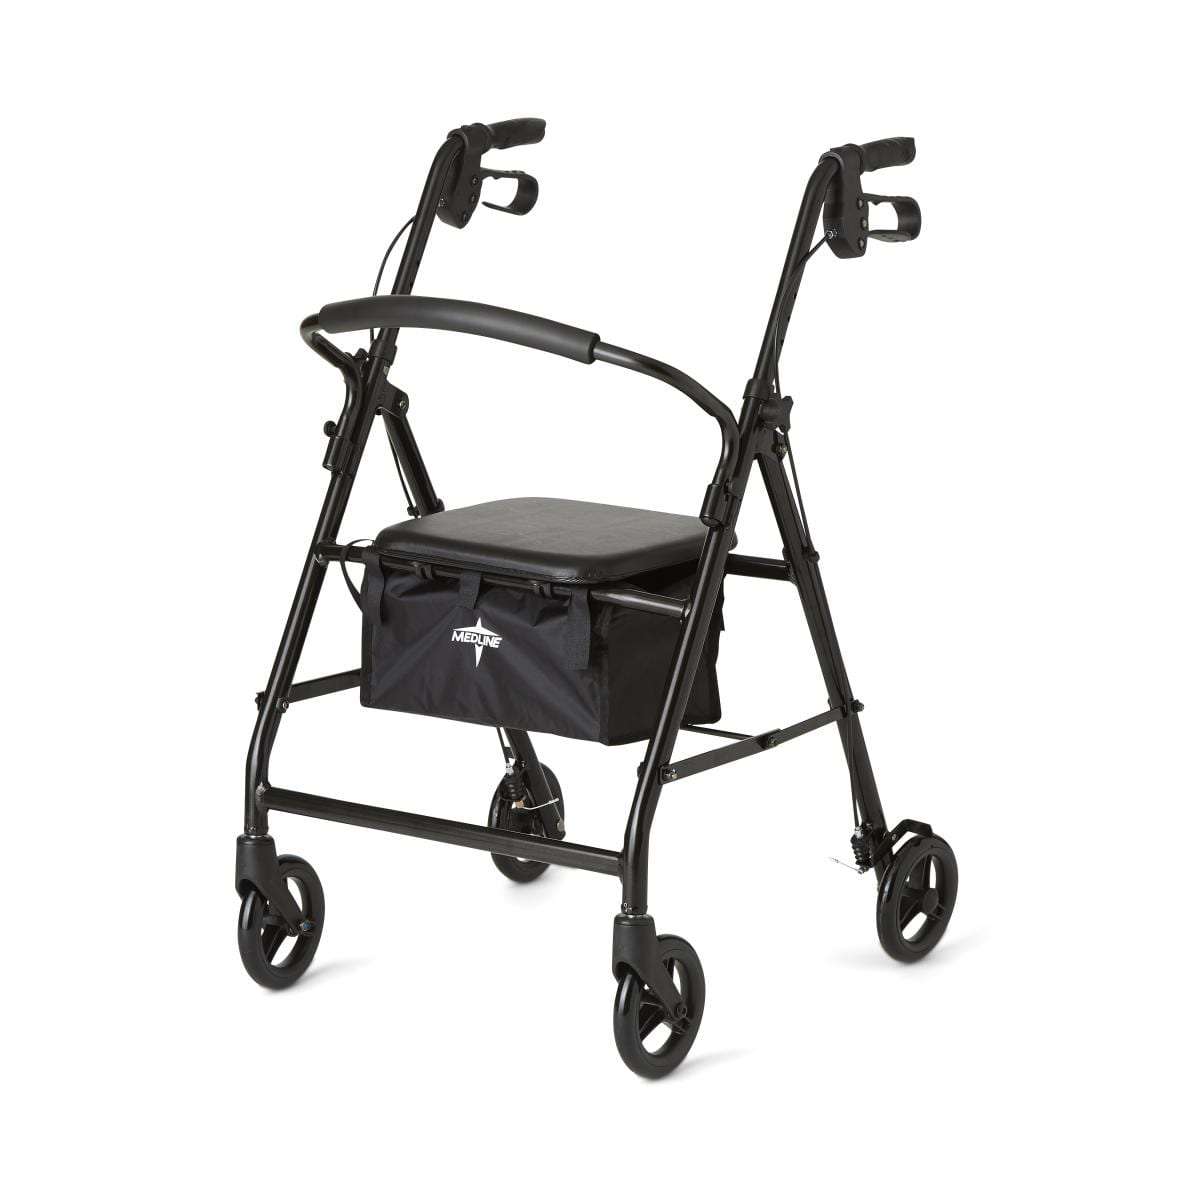 lightweight, foldable rolling walker with hand brakes and seat for obese people